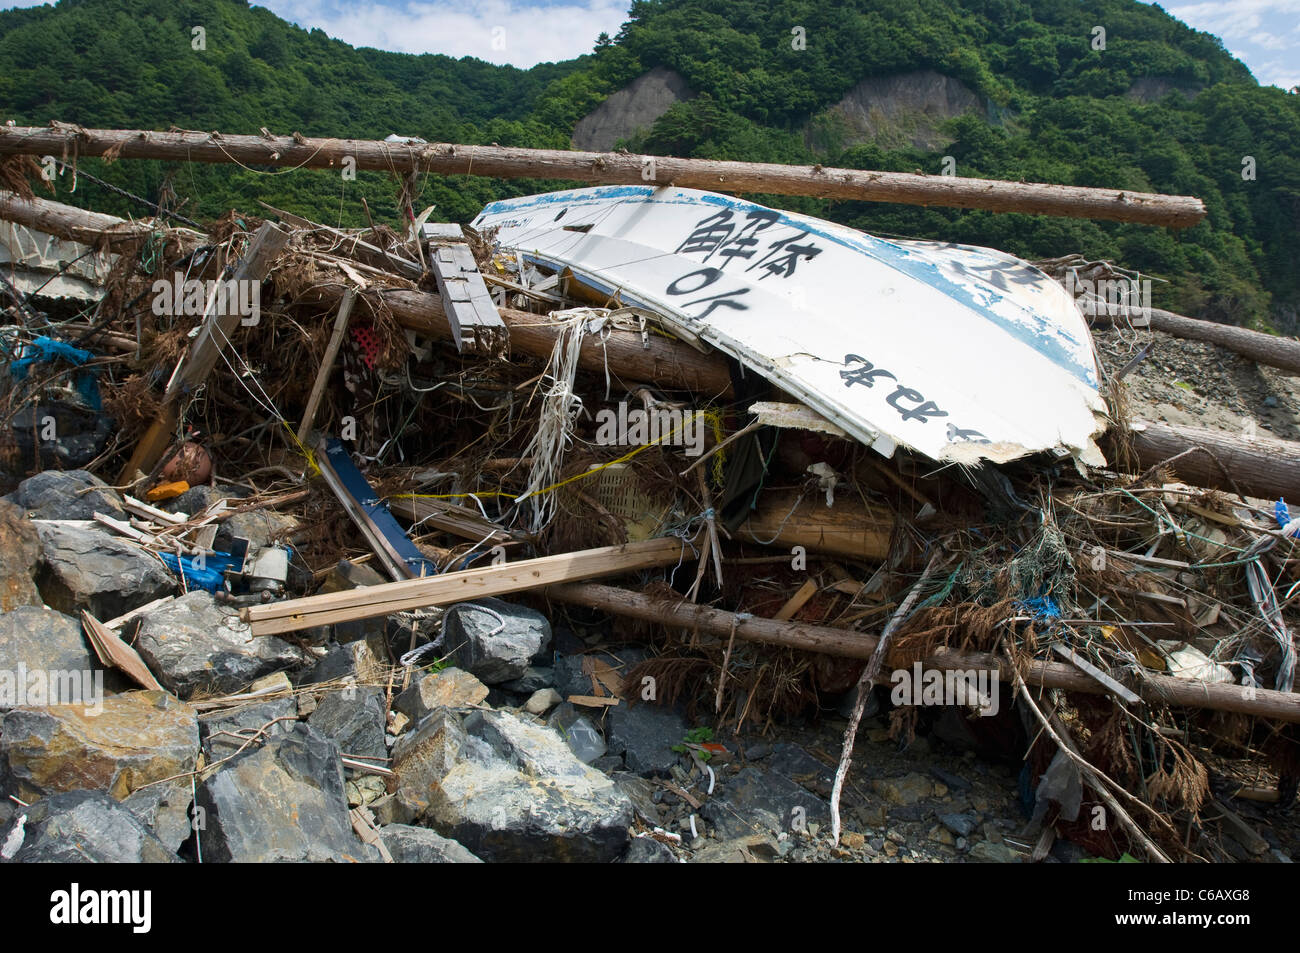 Tsunami debris waiting to be cleared - Stock Image